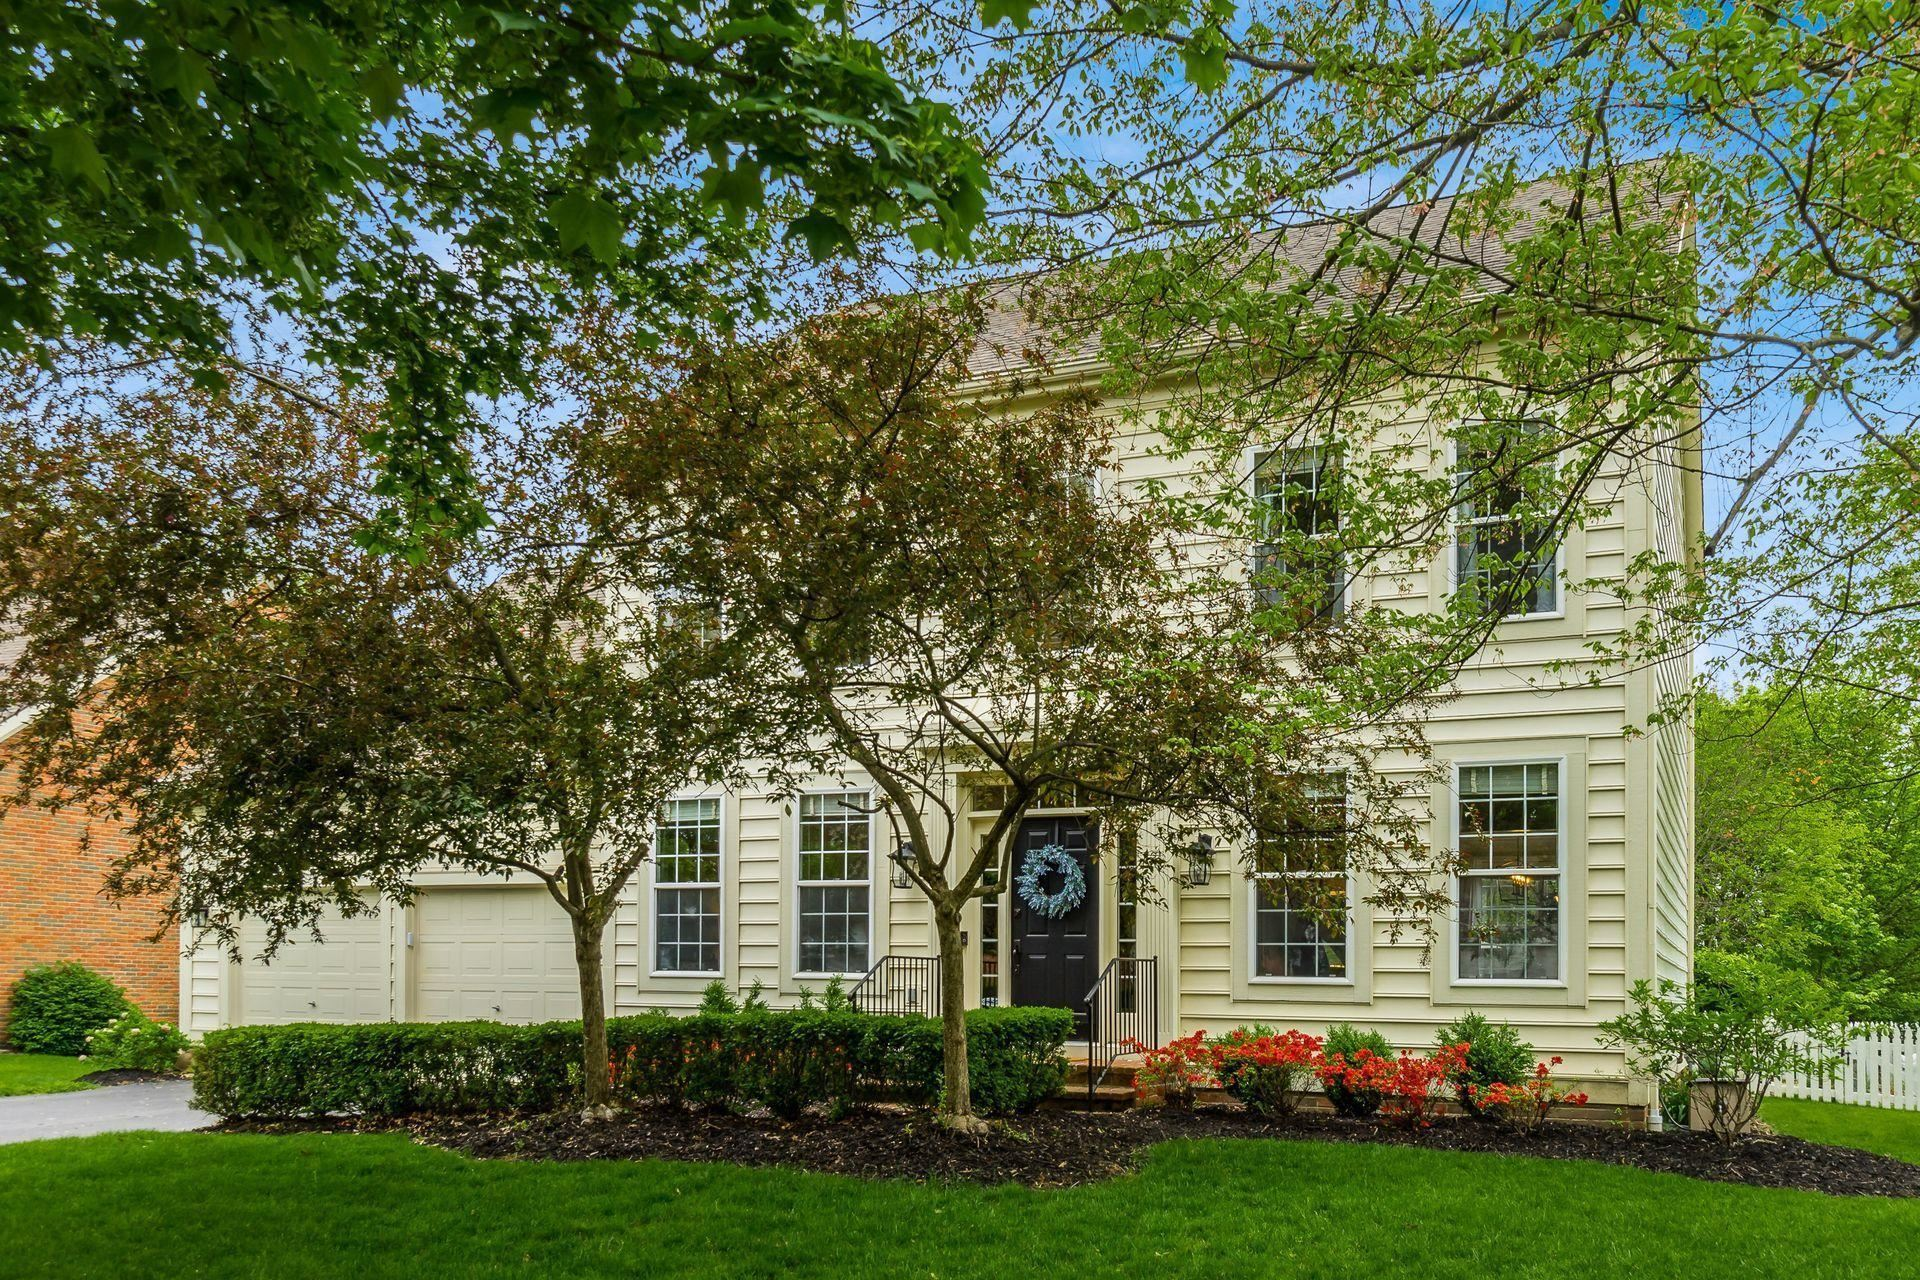 Photo of 7385 Hampsted Square Square N, New Albany, OH 43054 (MLS # 221014142)